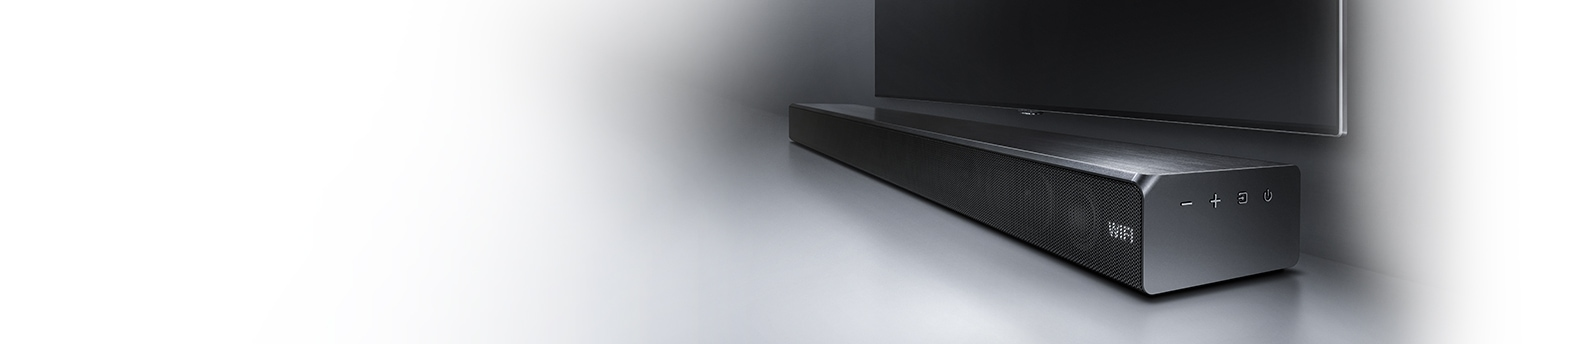 Samsung Soundbar Wireless